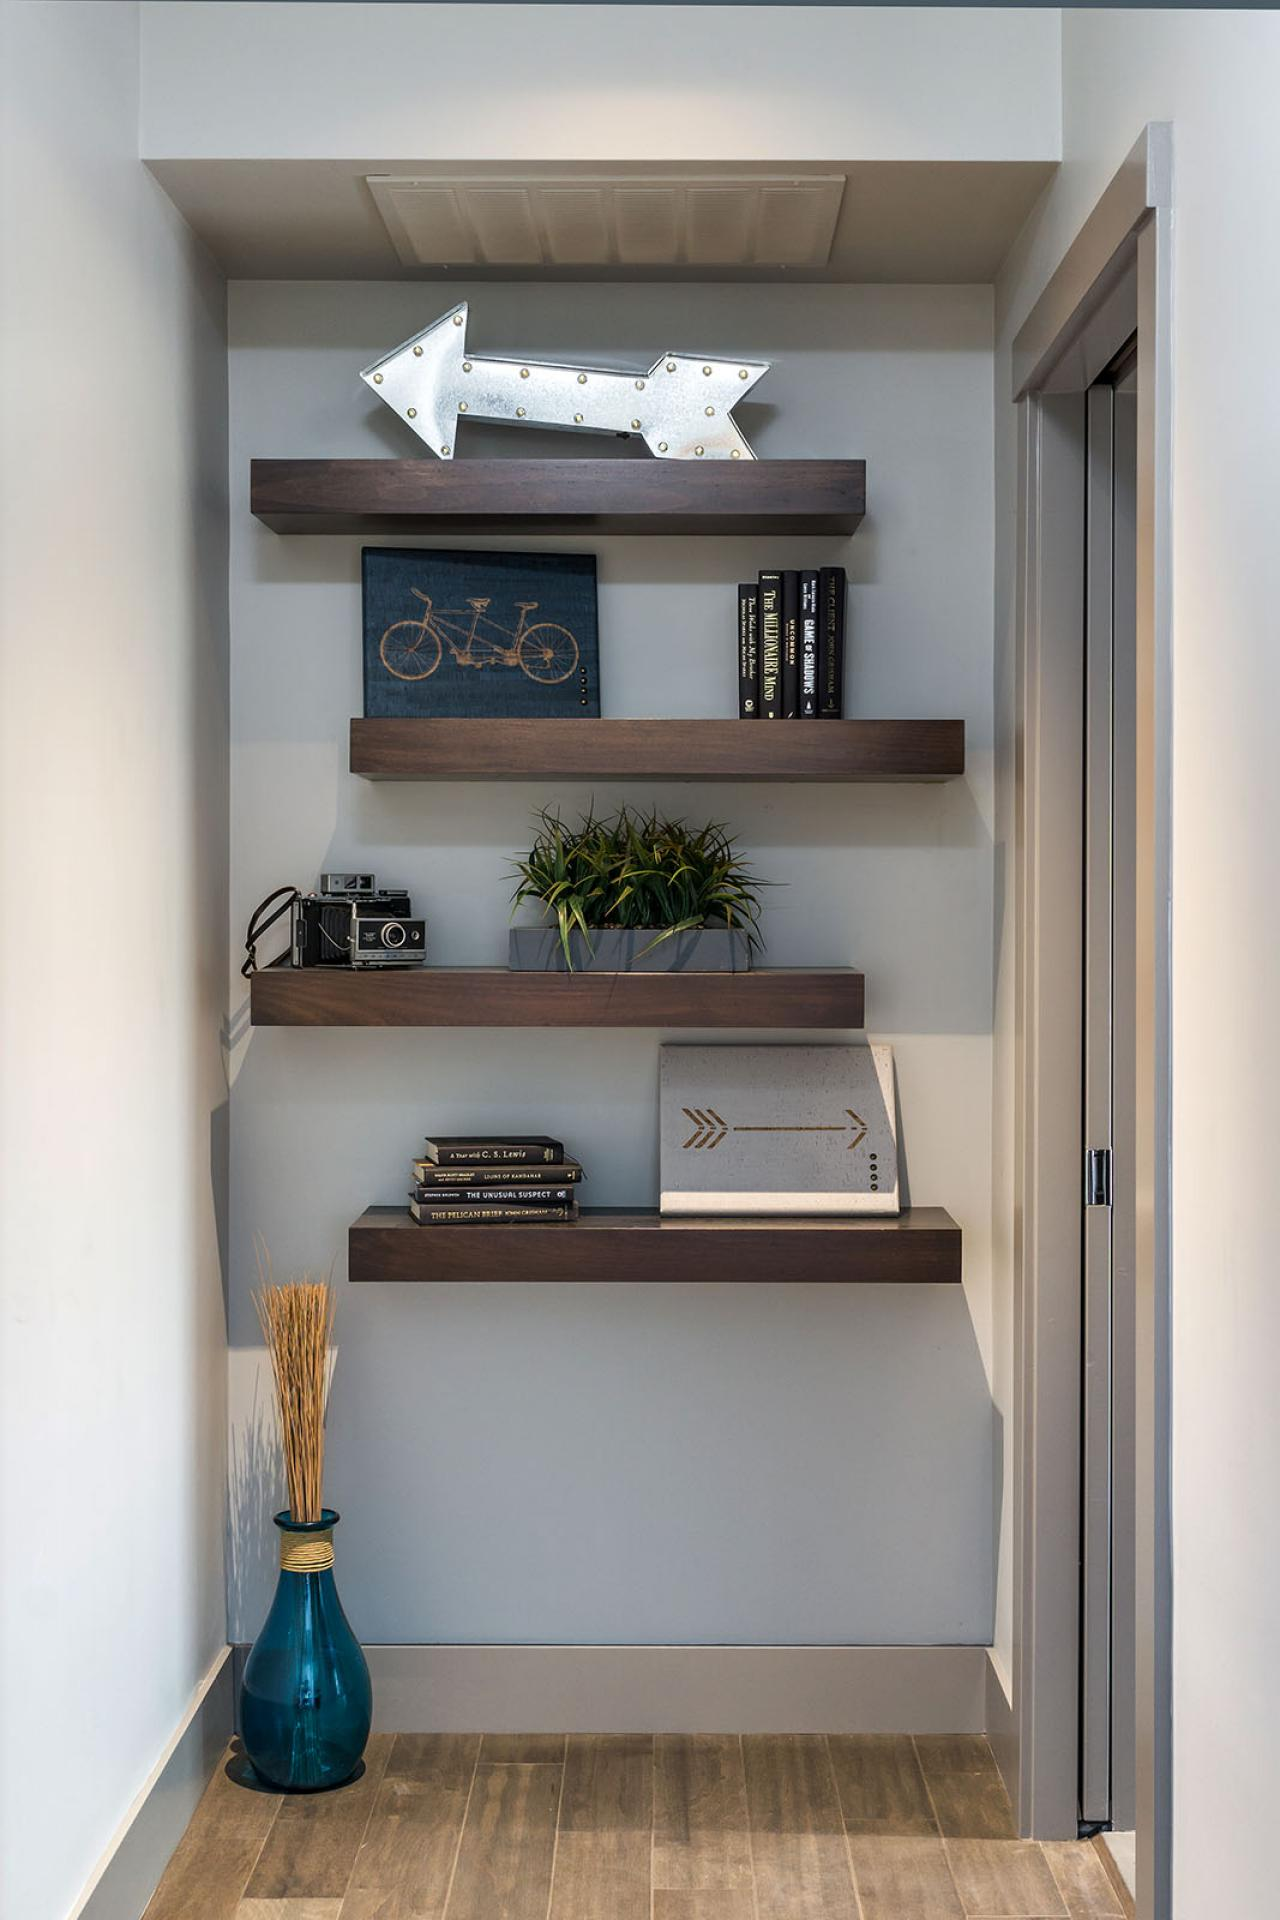 ways decorate with floating shelves decorating extra long white decorative contemporary hallway ematic trackband smartband computer desk and bookshelf unique wooden coat hanger